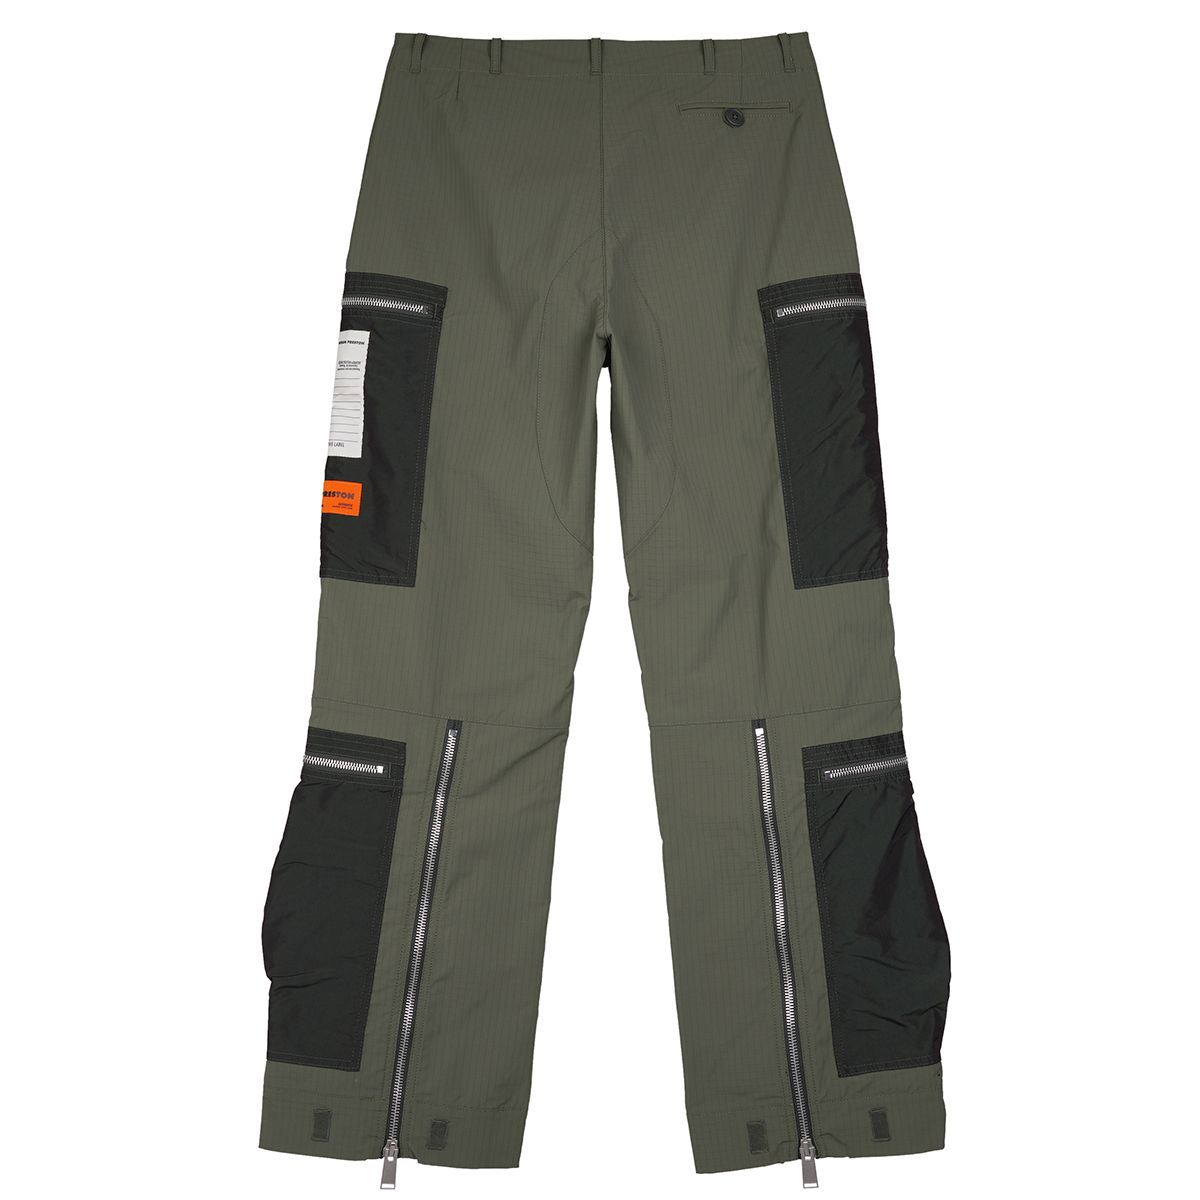 HERON PRESTON RIPSTOP MILITARY PANTS AP / 5500 : DARK OLIVE NO COLOR